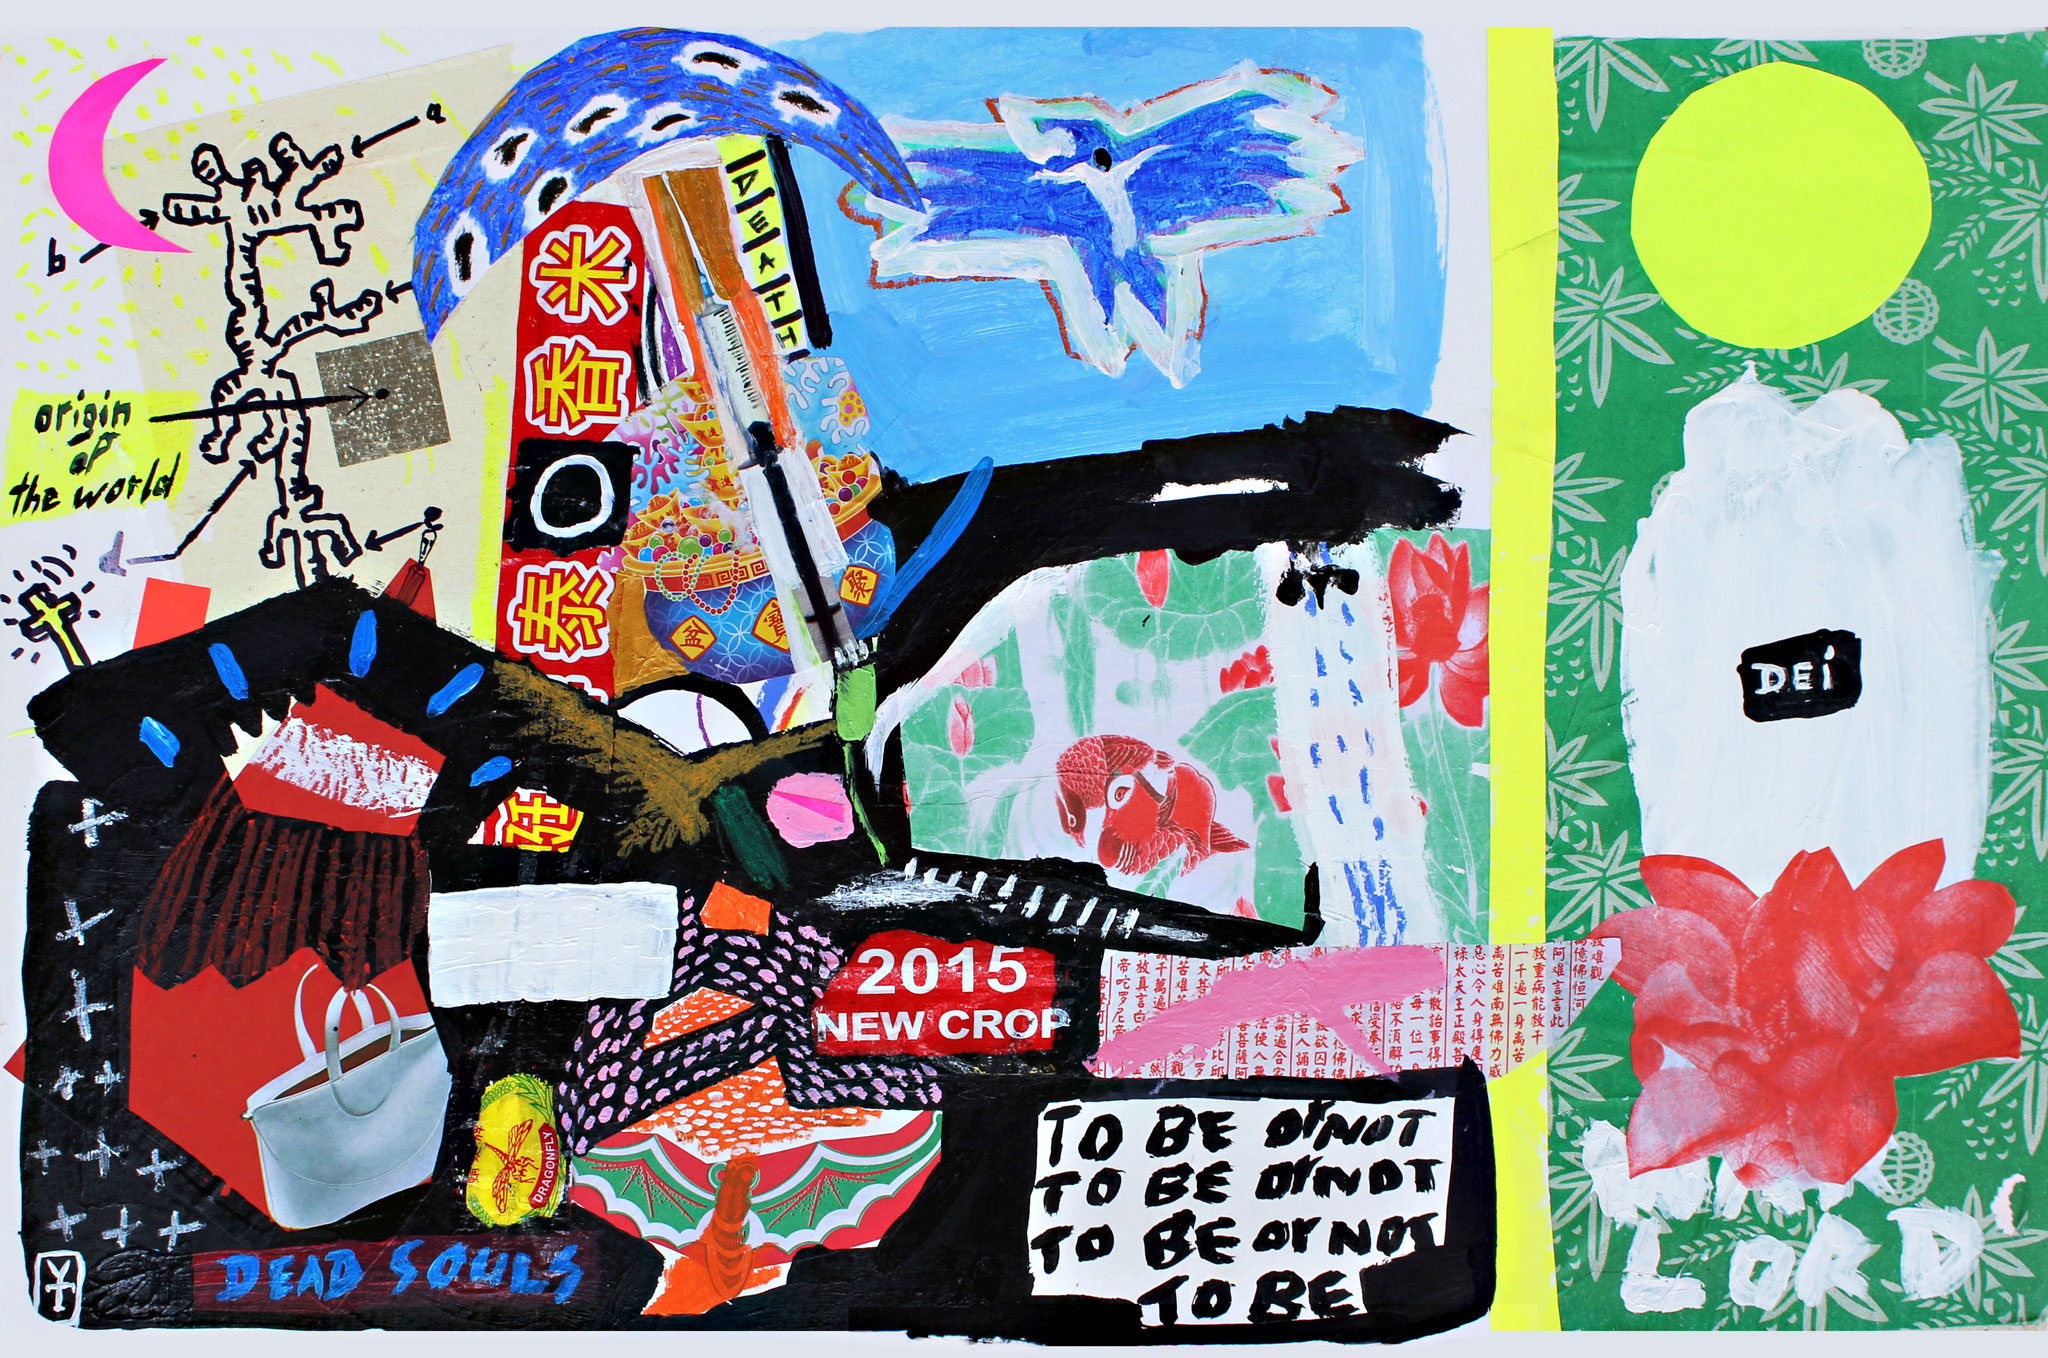 NEWCROP/ Acrylic, oil pastel and collage on board - 32x20inch- 2015